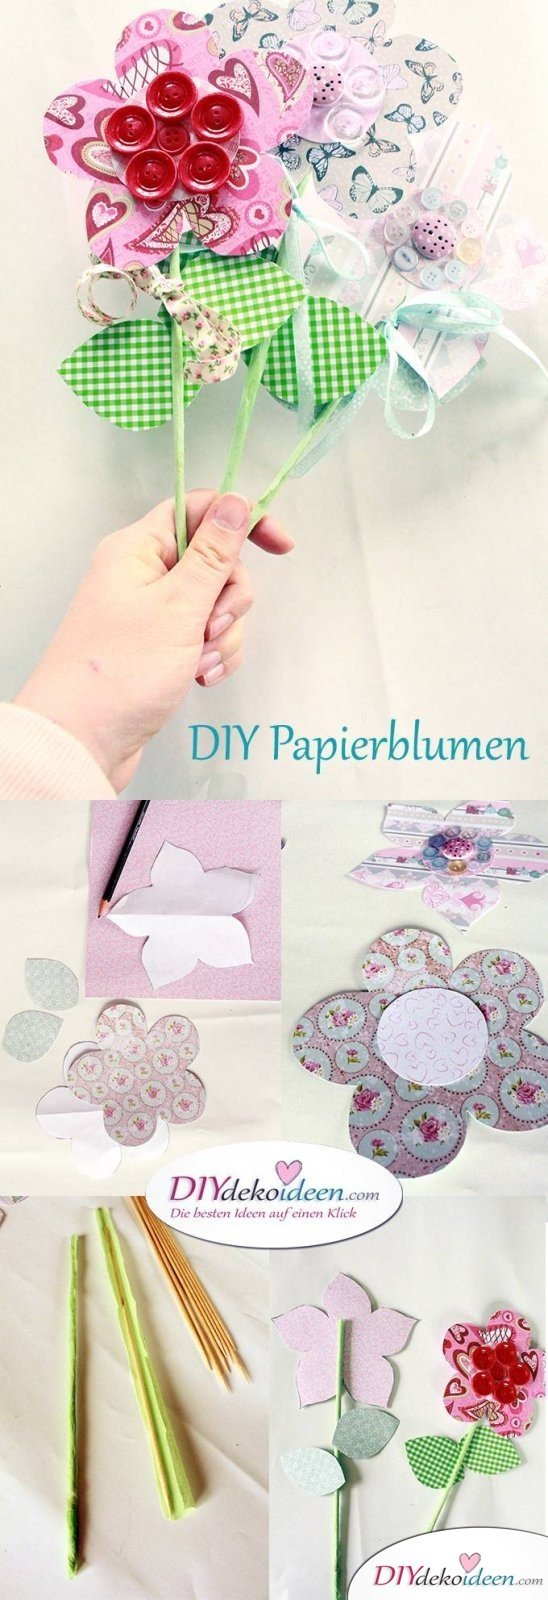 DIY Papierblumn zum Muttertag